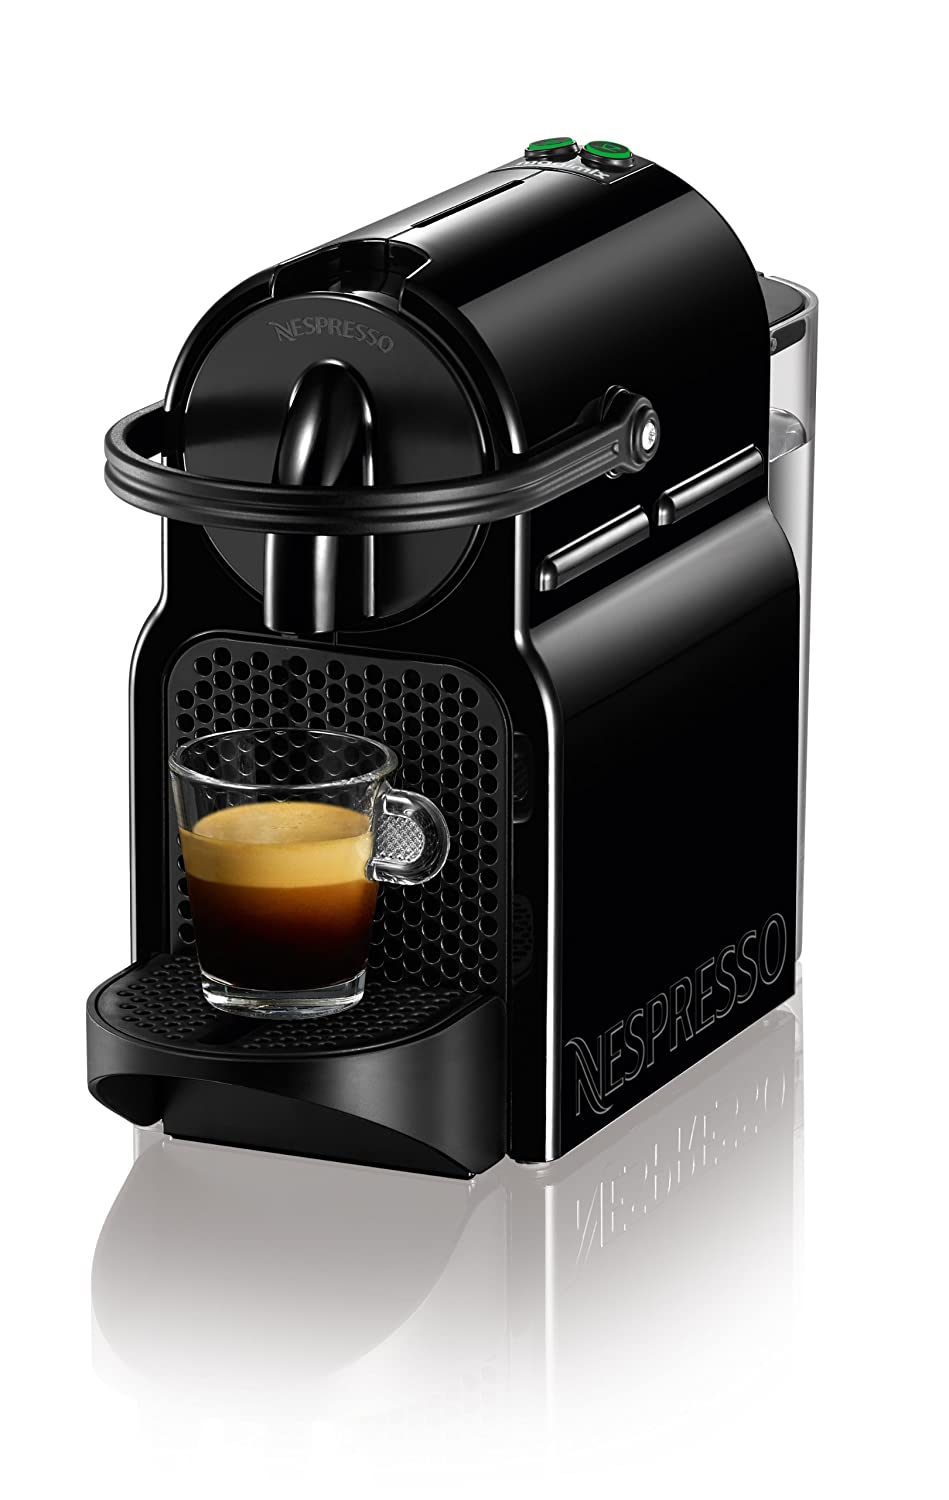 commercial coffee machine price in india